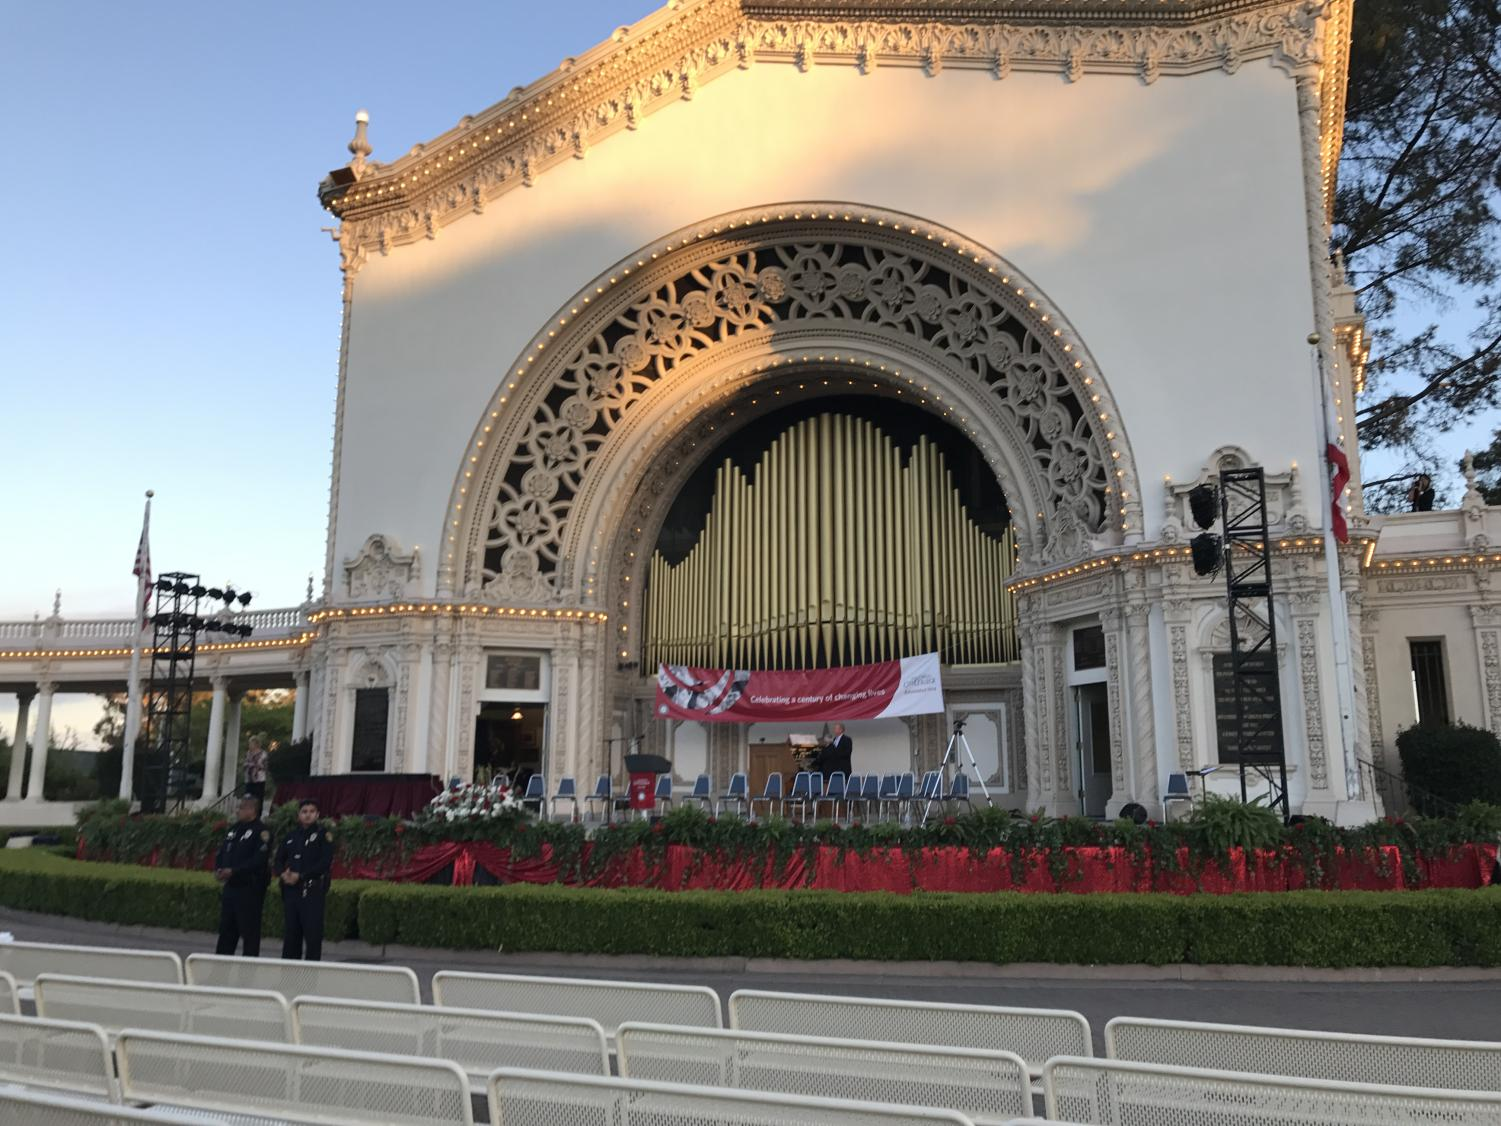 The Organ Pavilion has the ability to hold around 2,500 people.